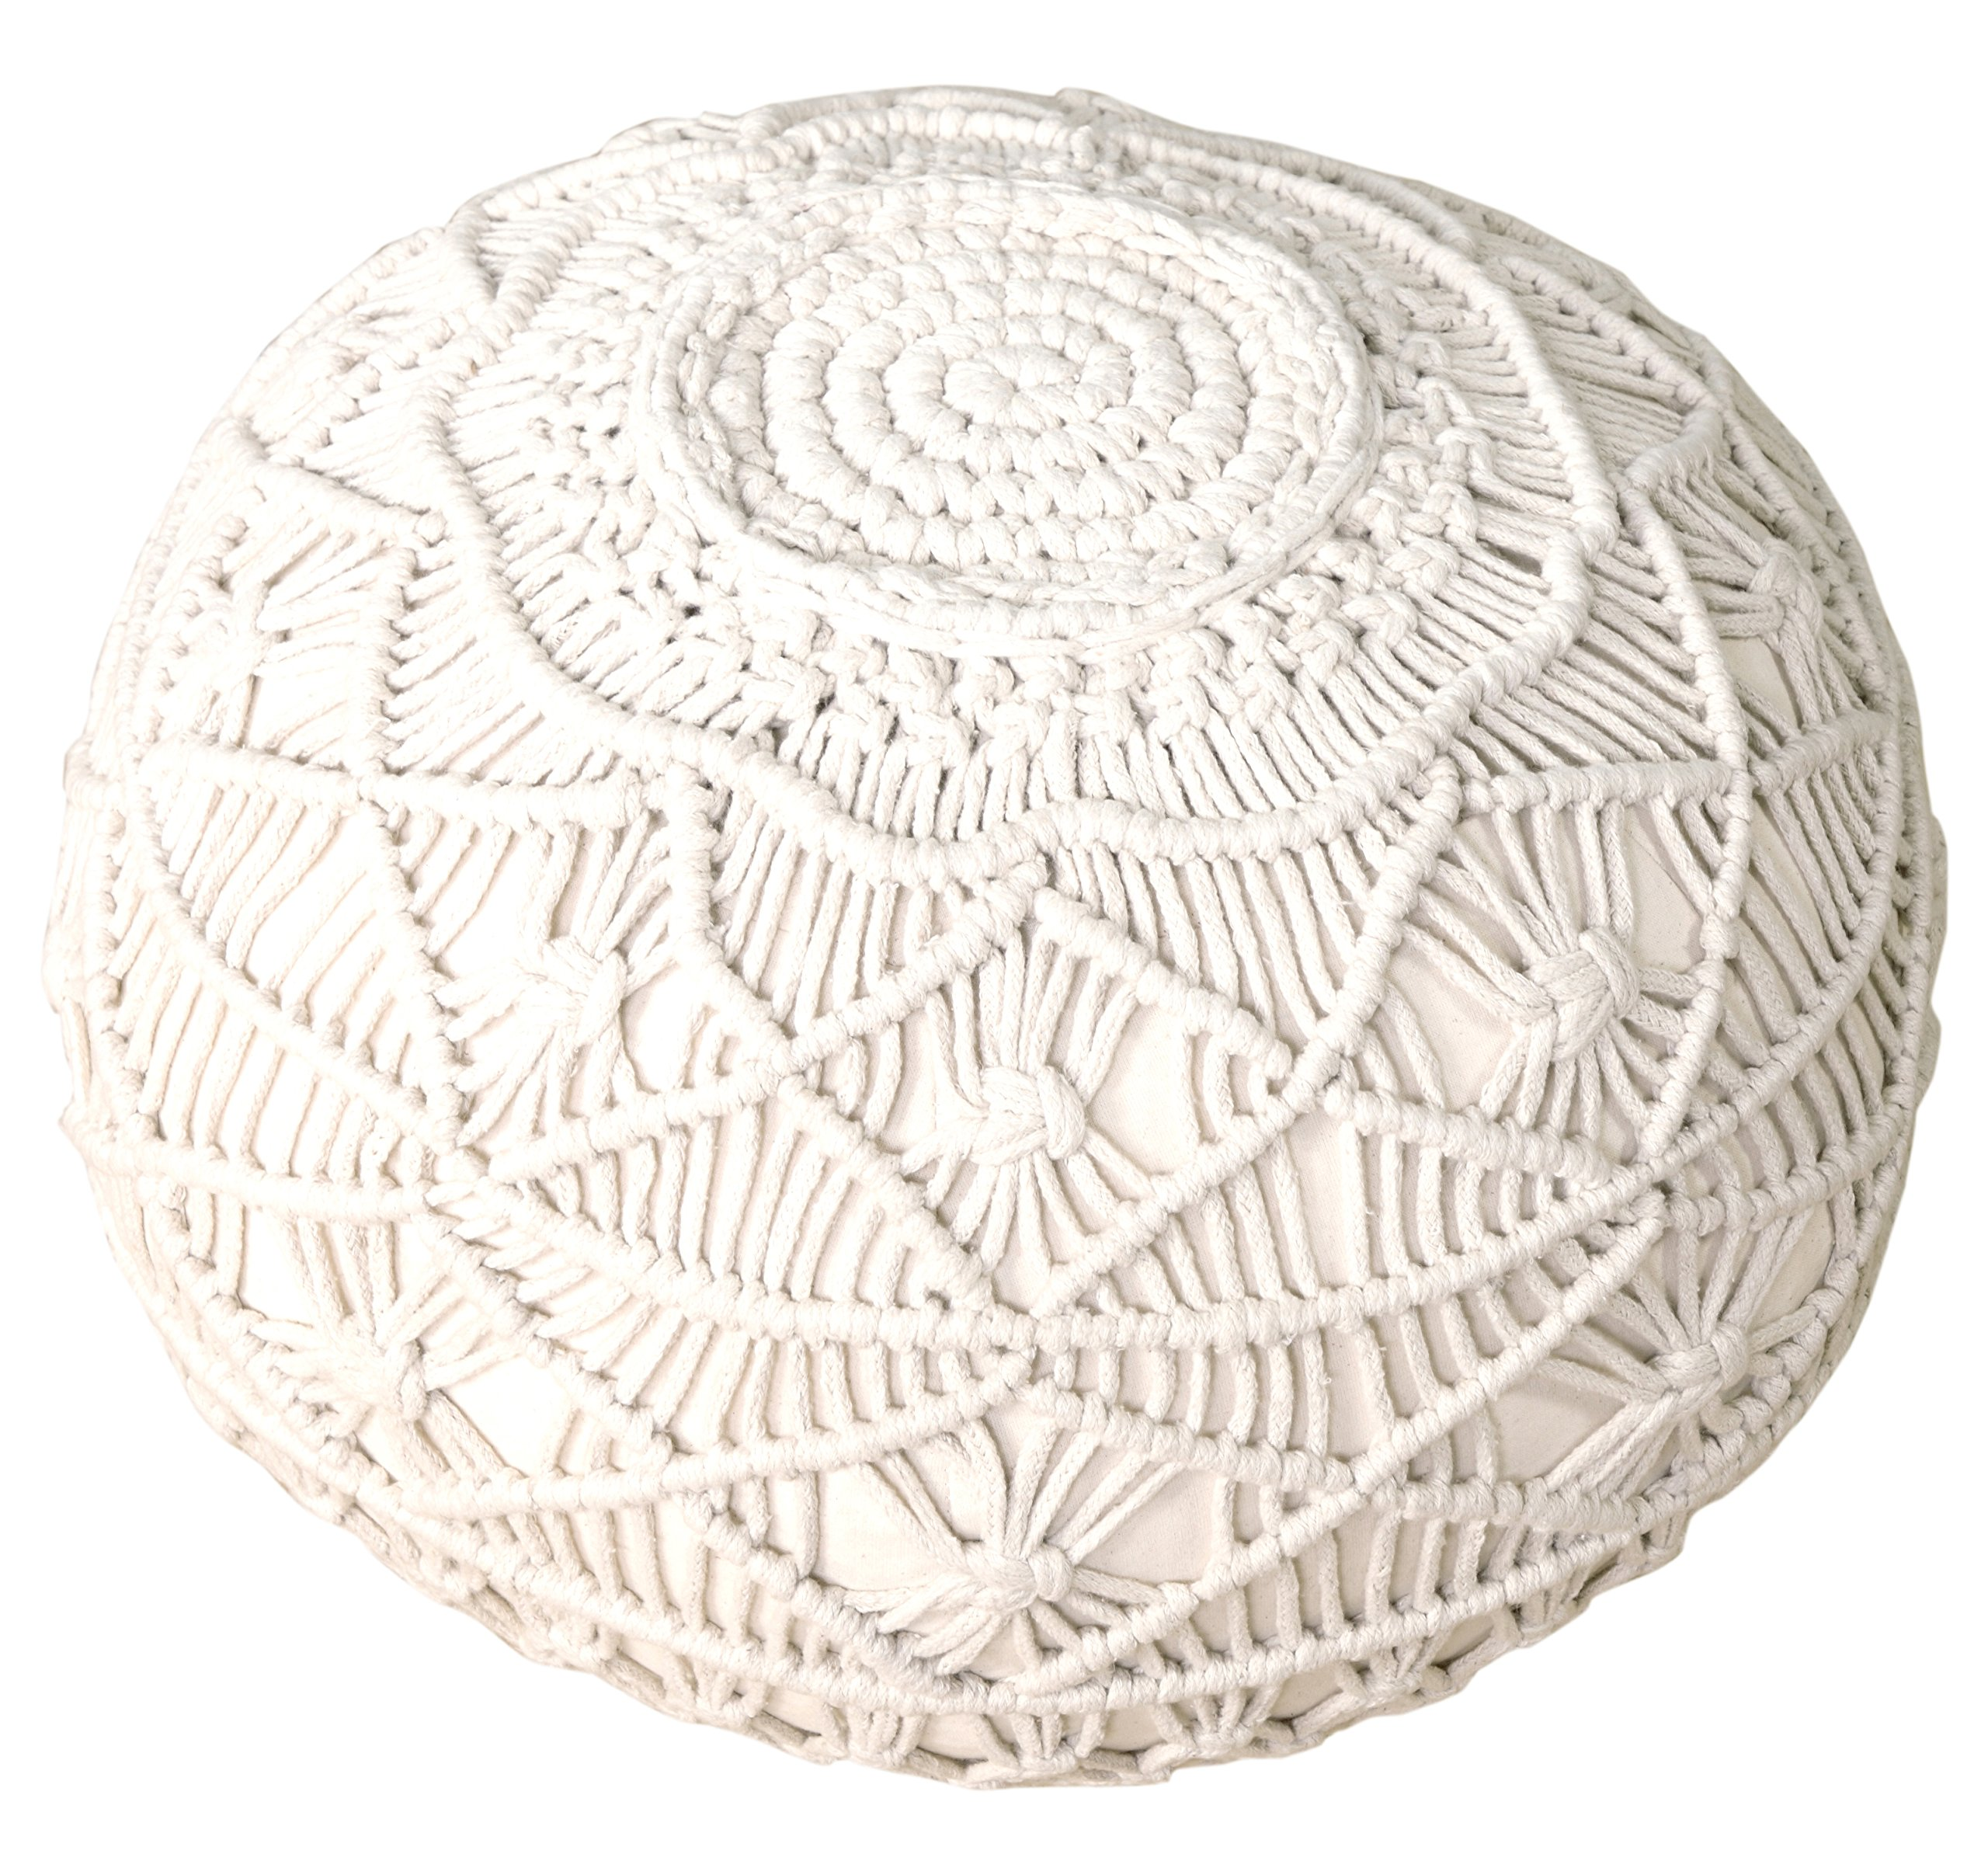 L.R. Resources Mystic Macramé Pouf Ottoman, 16'' x 20'', Natural by LR Resources